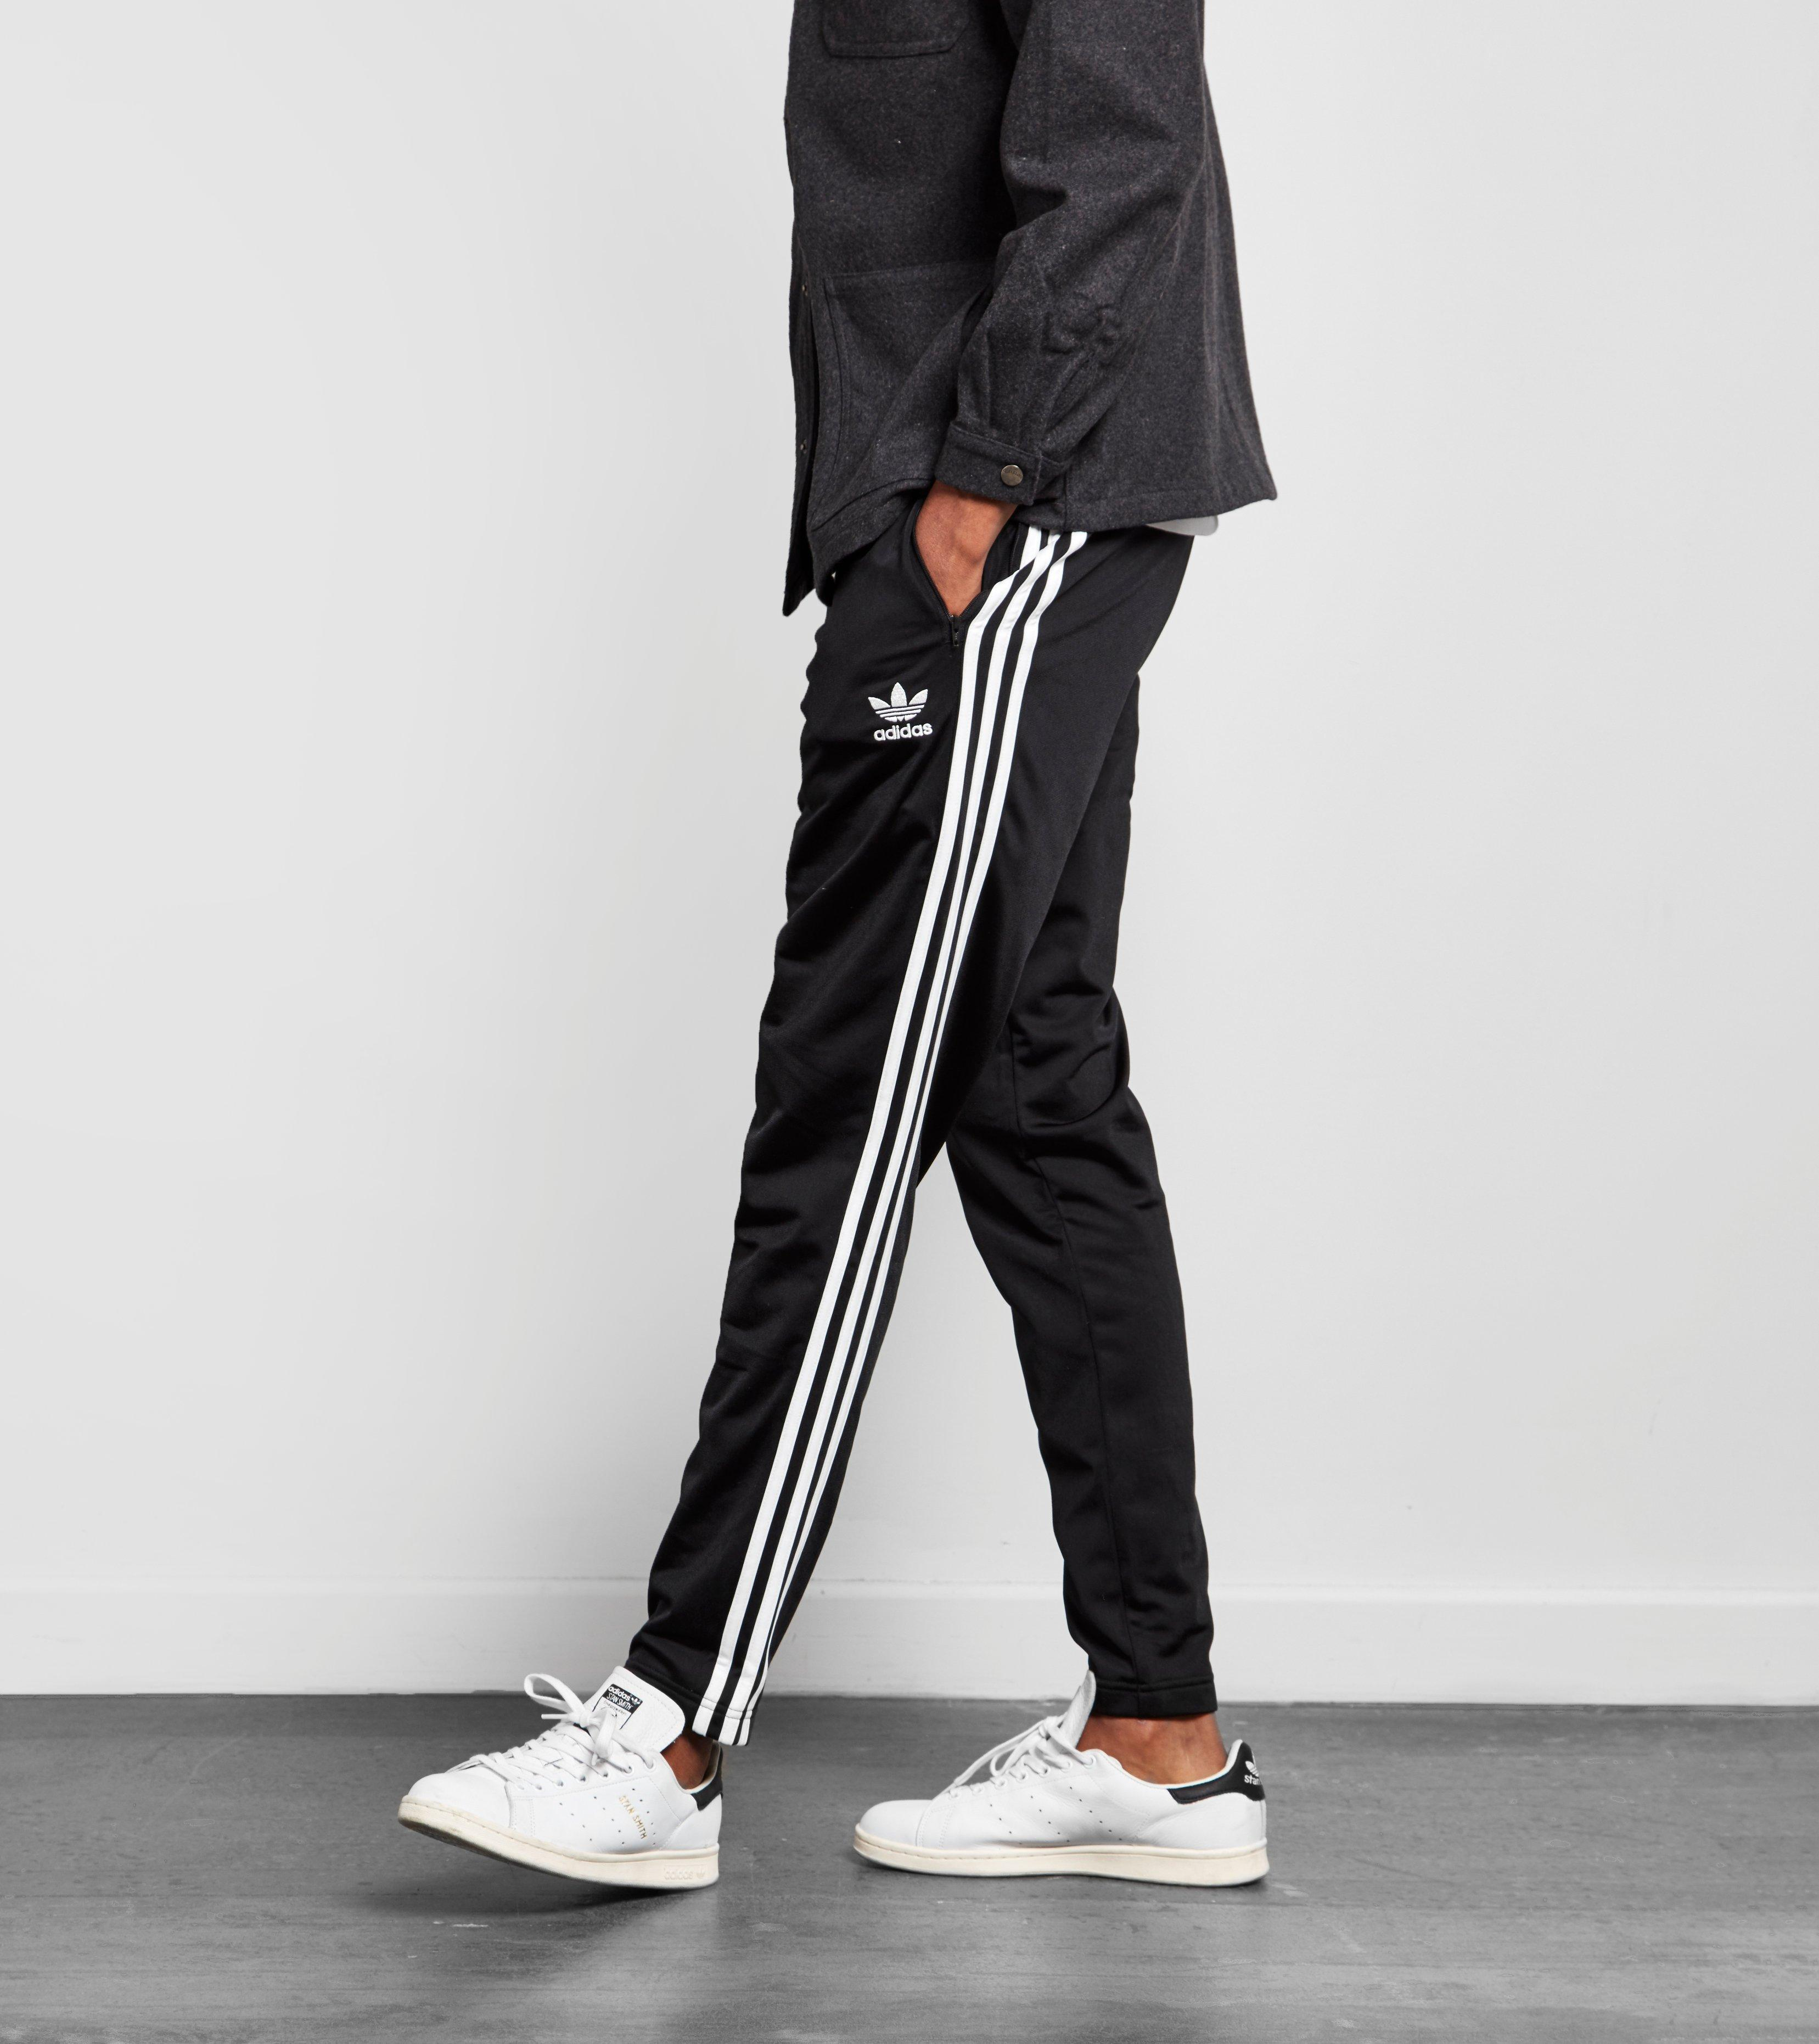 Adidas Shoes Tracksuit Combo